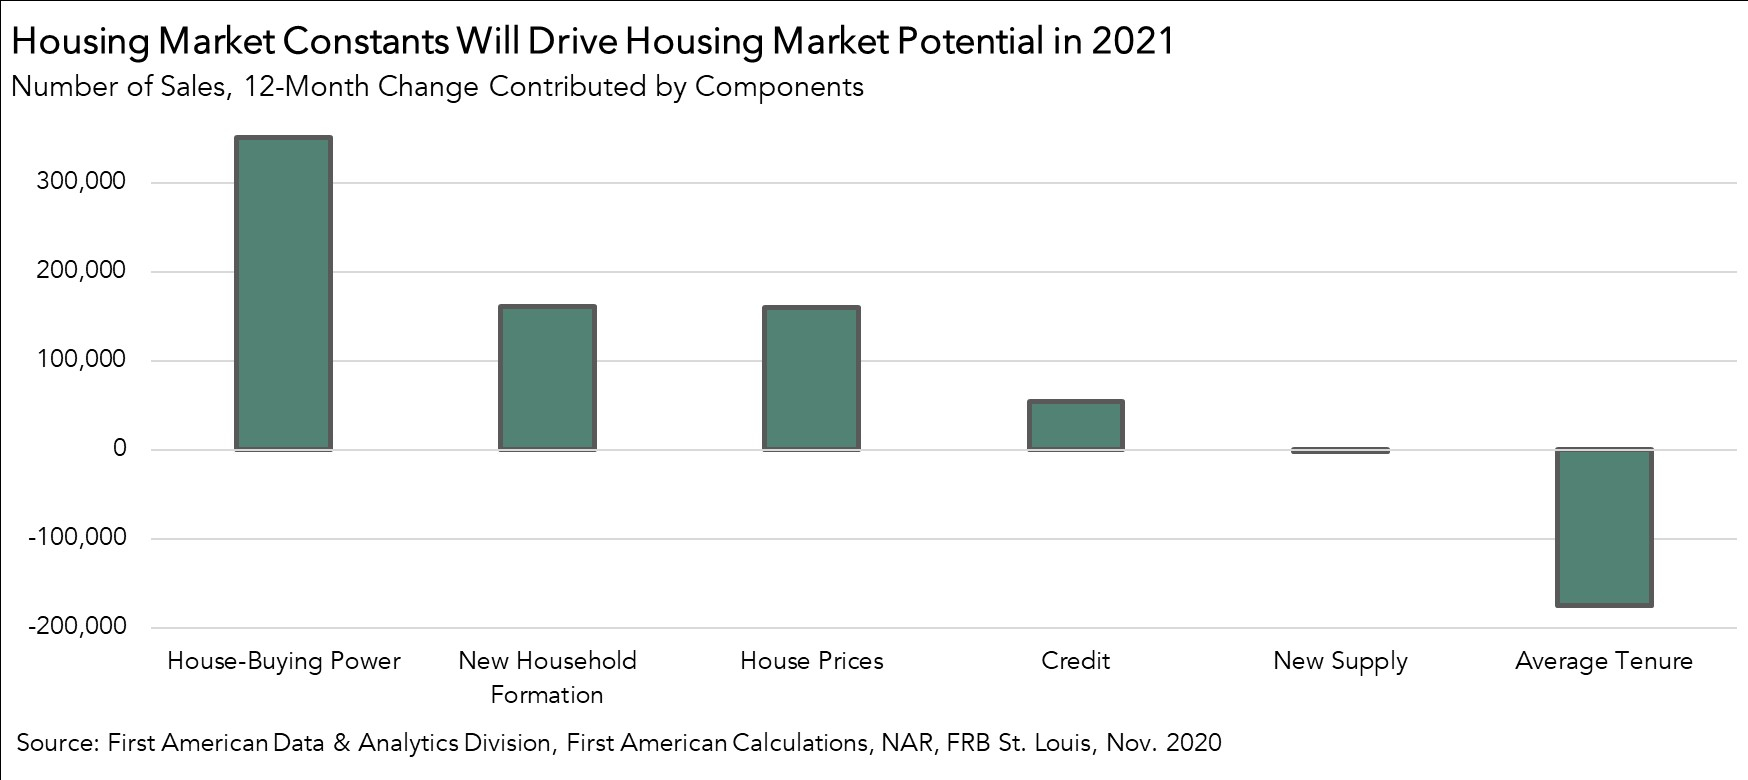 Housing Market Constants will Drive Housing Market Potential in 2021 Chart - November 2020